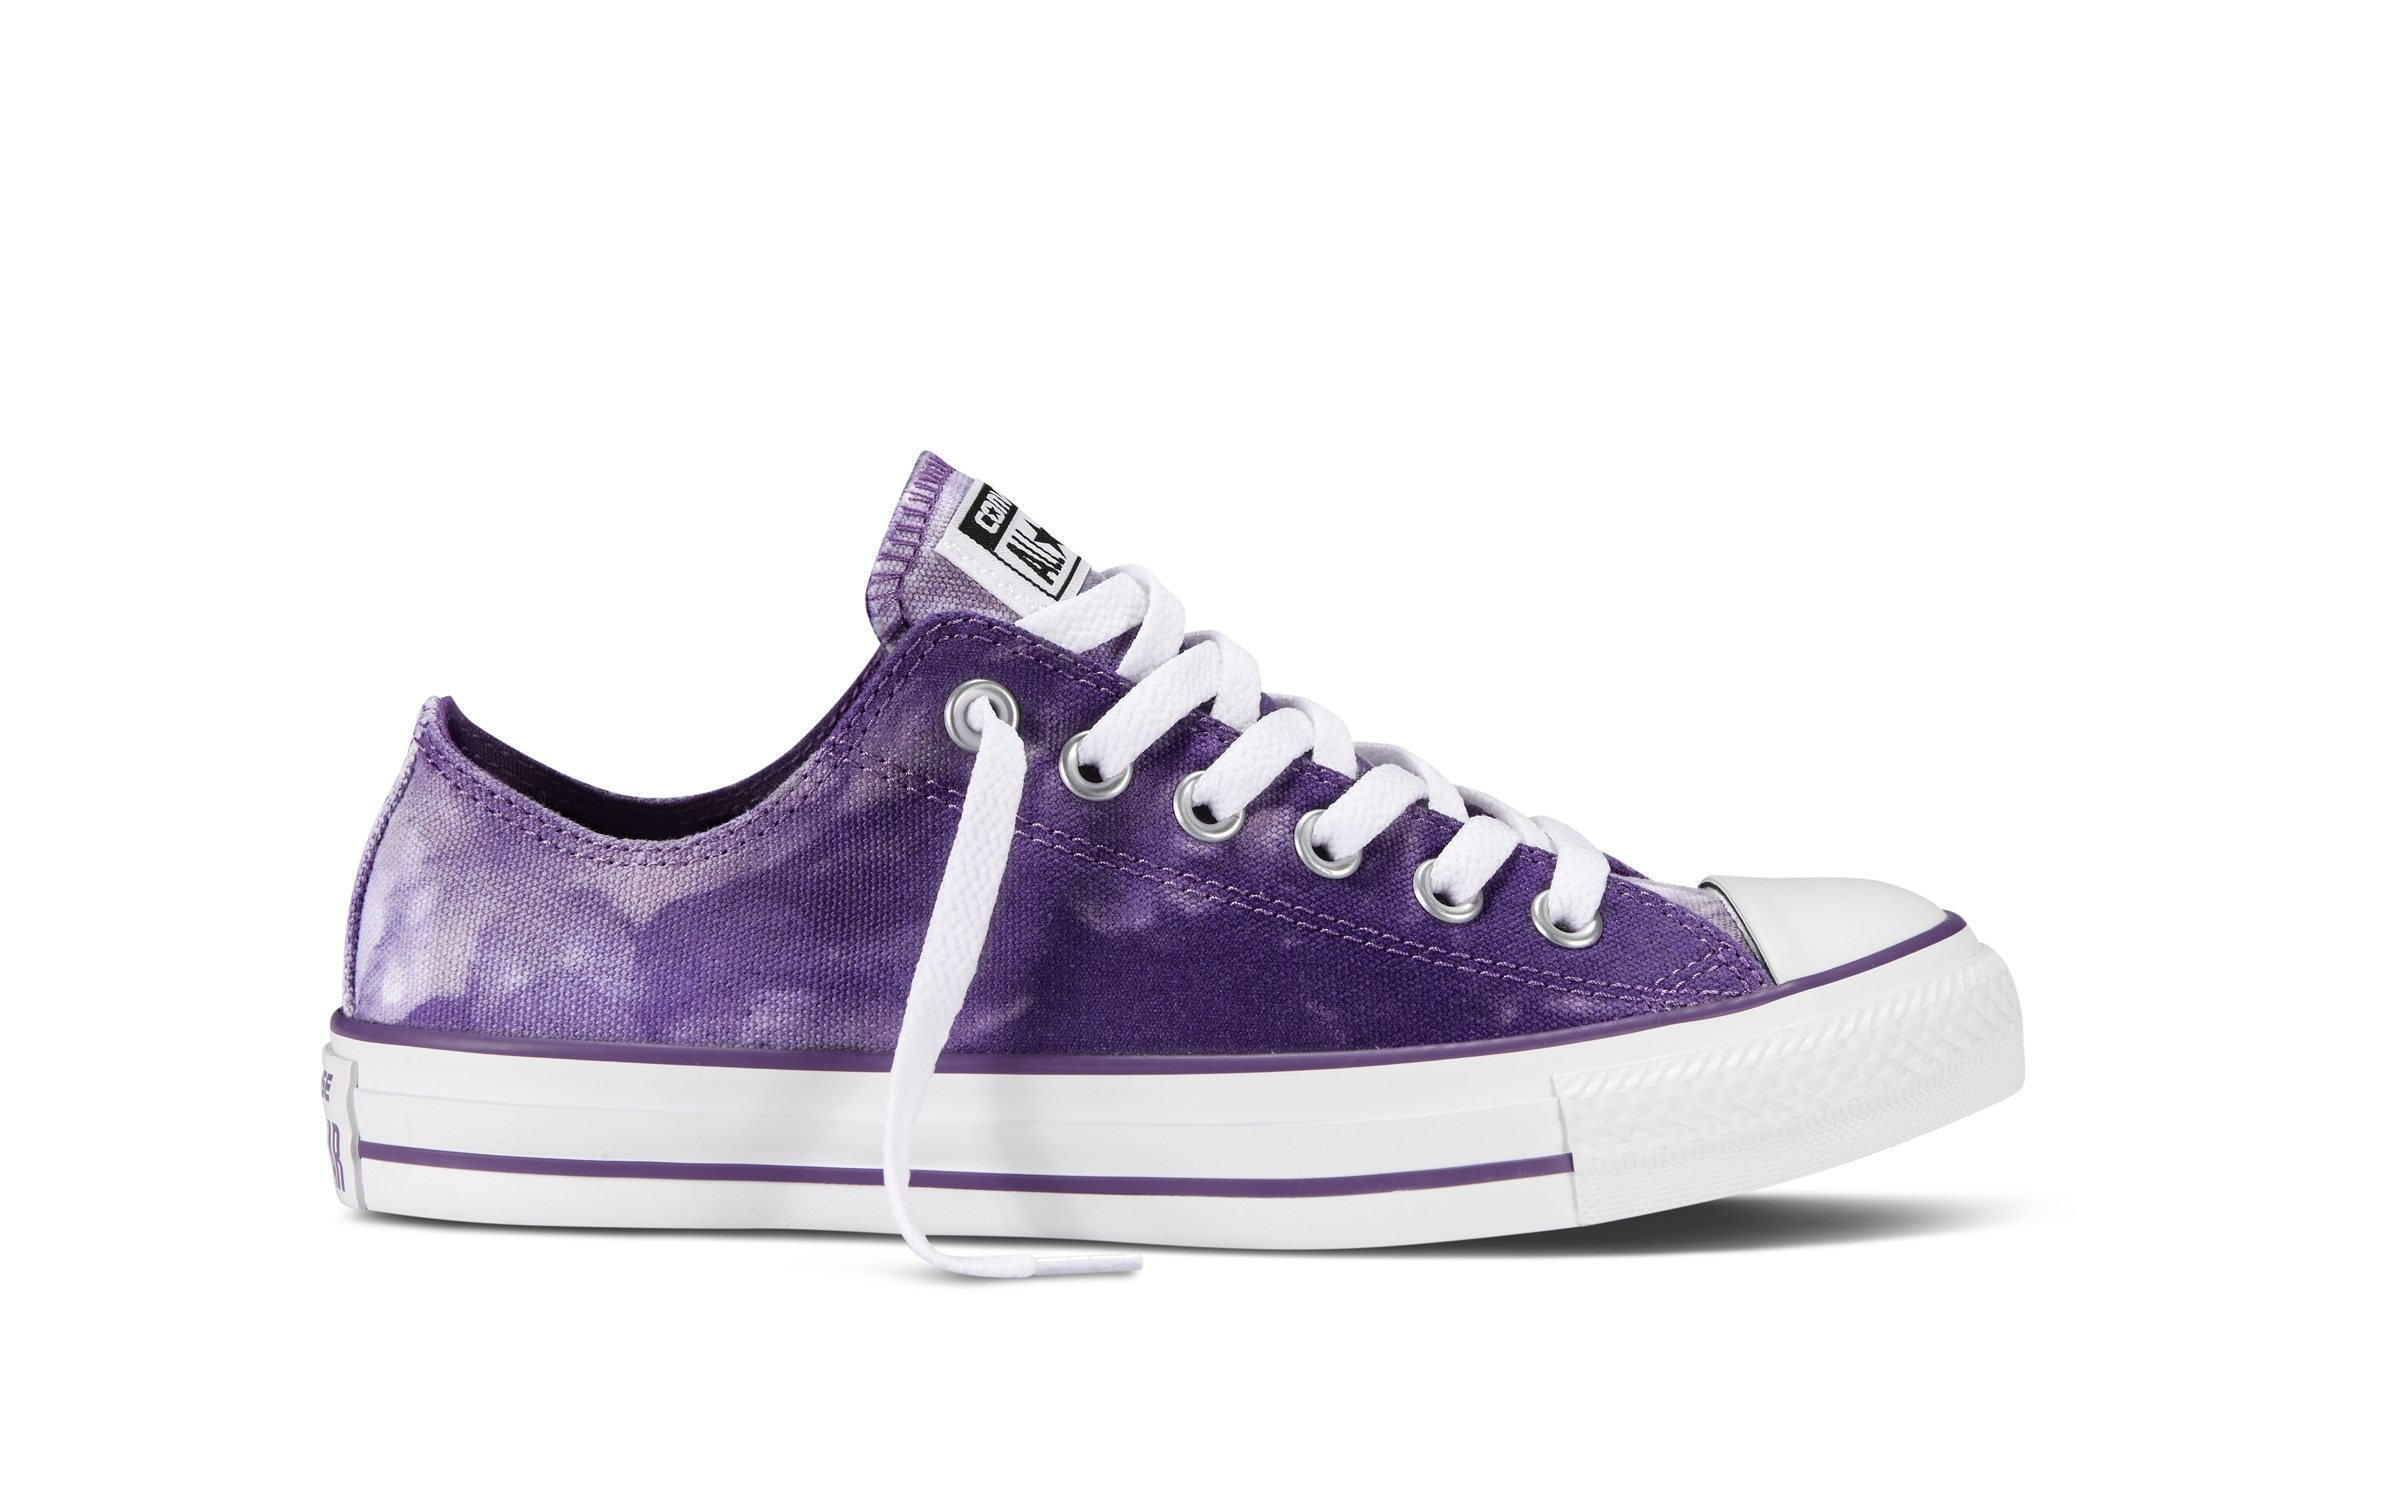 Chuck_Taylor_All_Star_Nightshade_1_27620